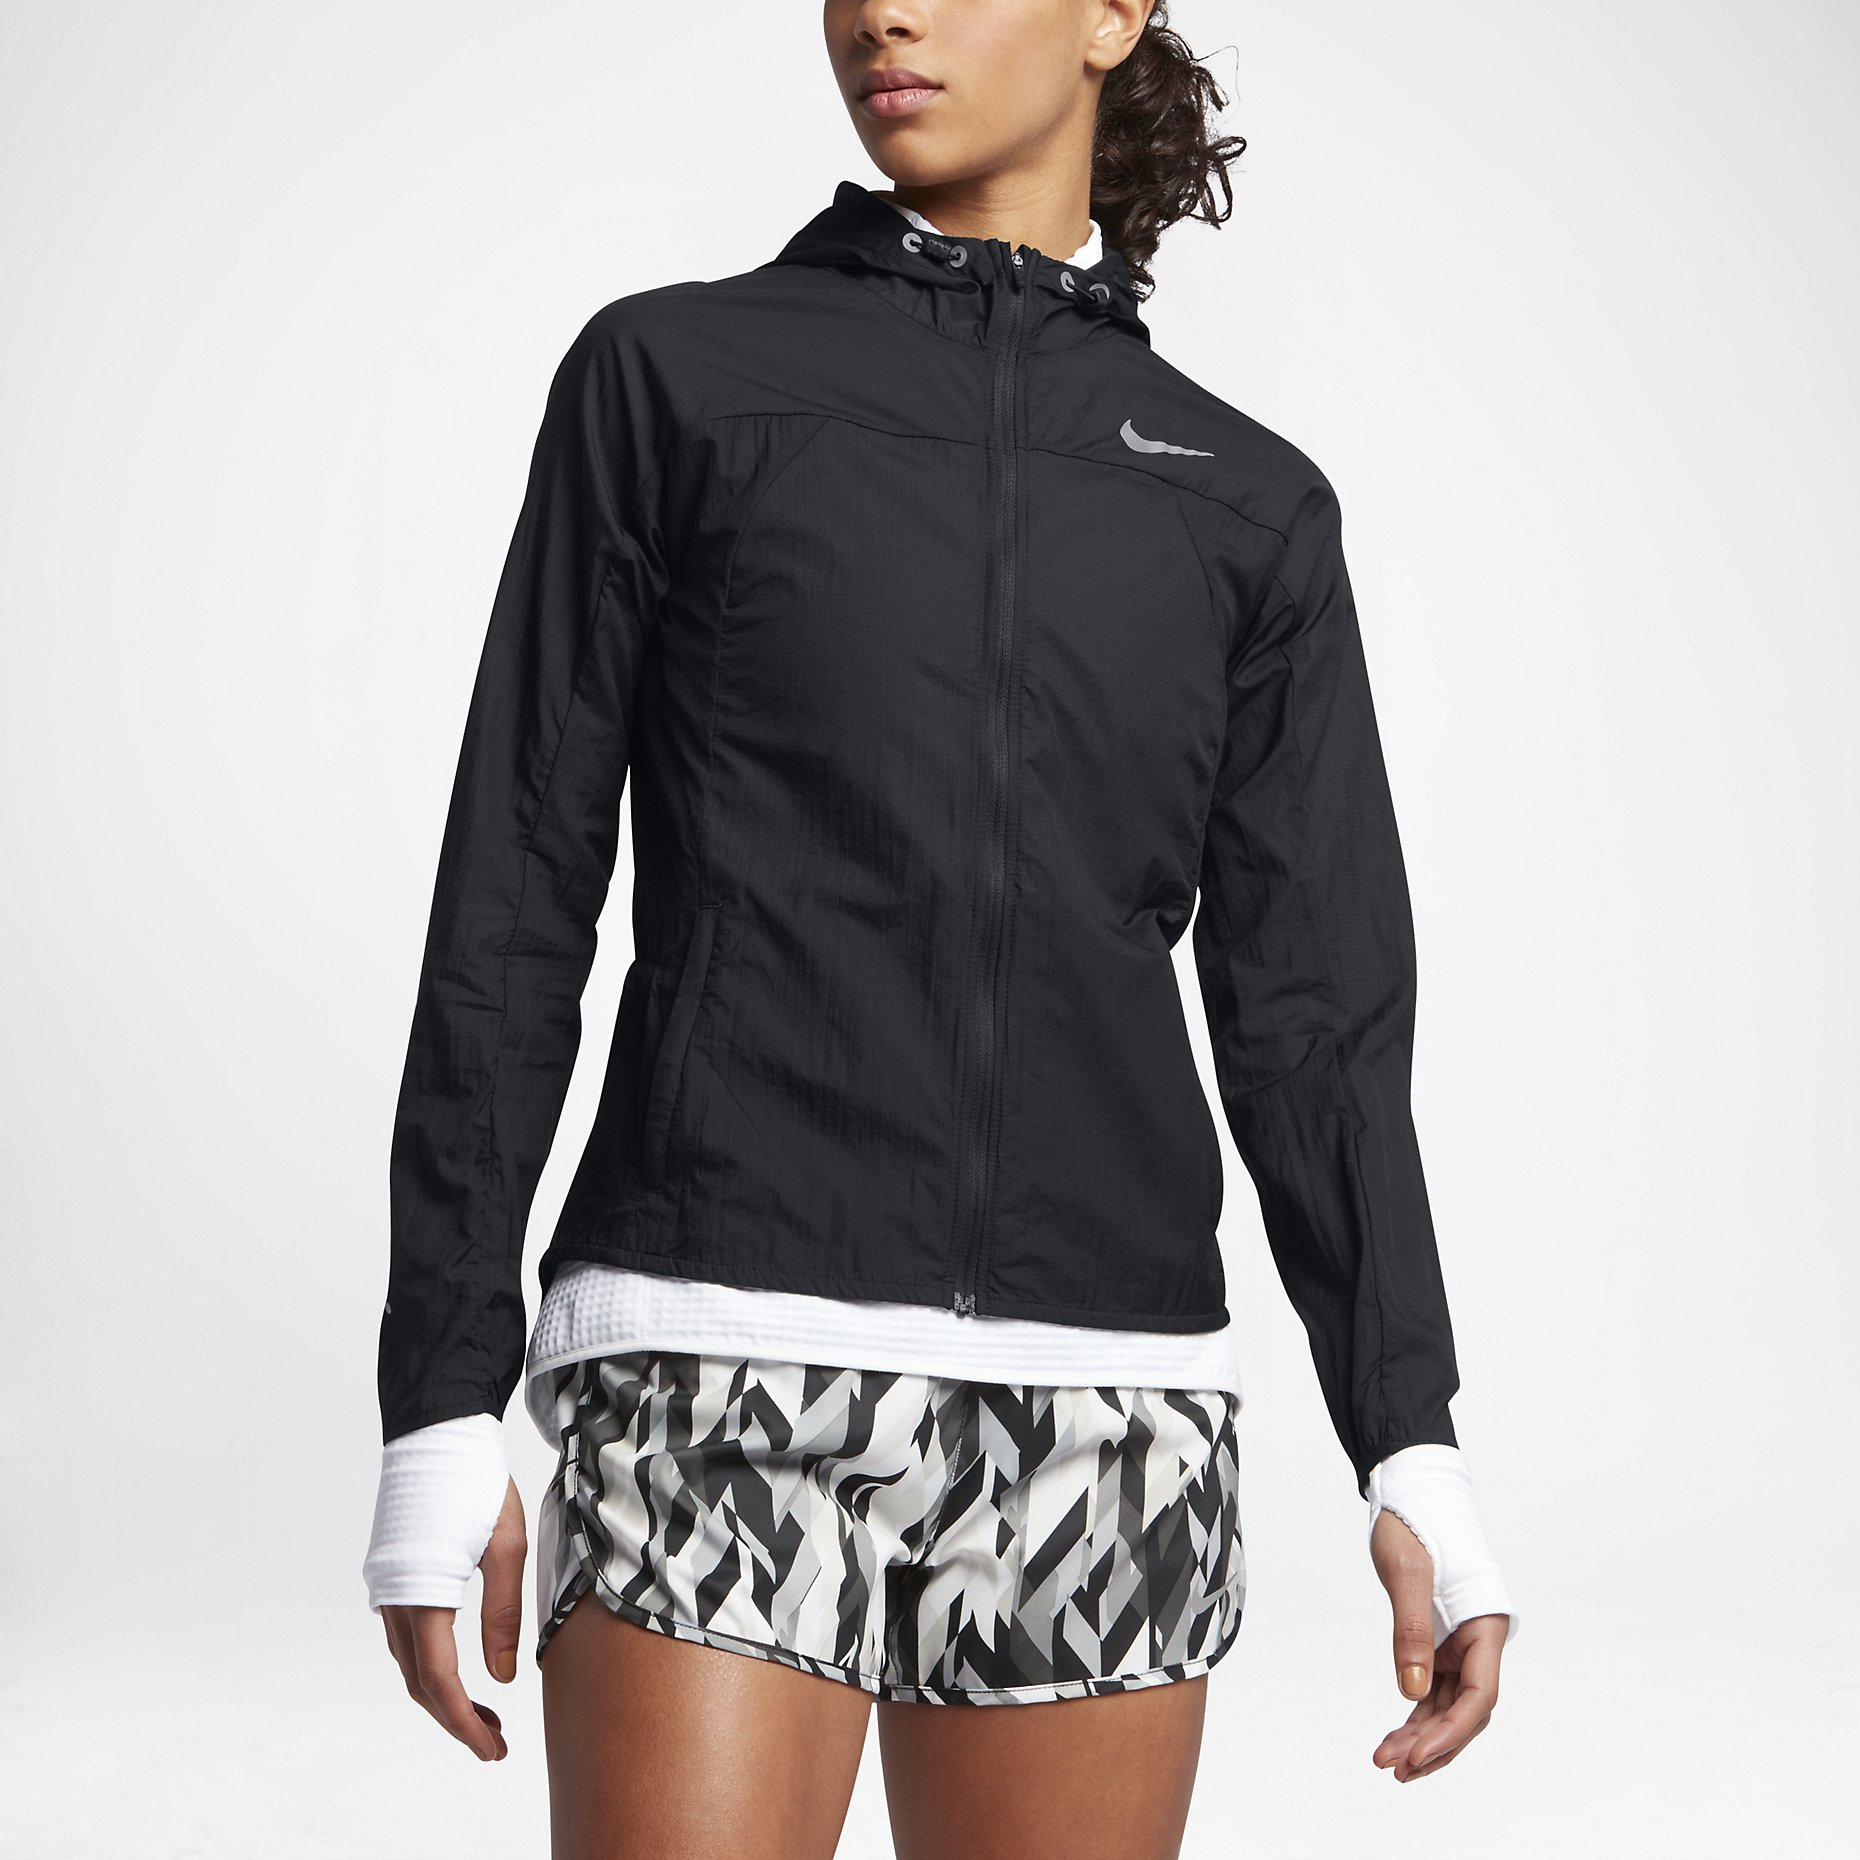 Nike Impossibly Light Womens Running Jacket